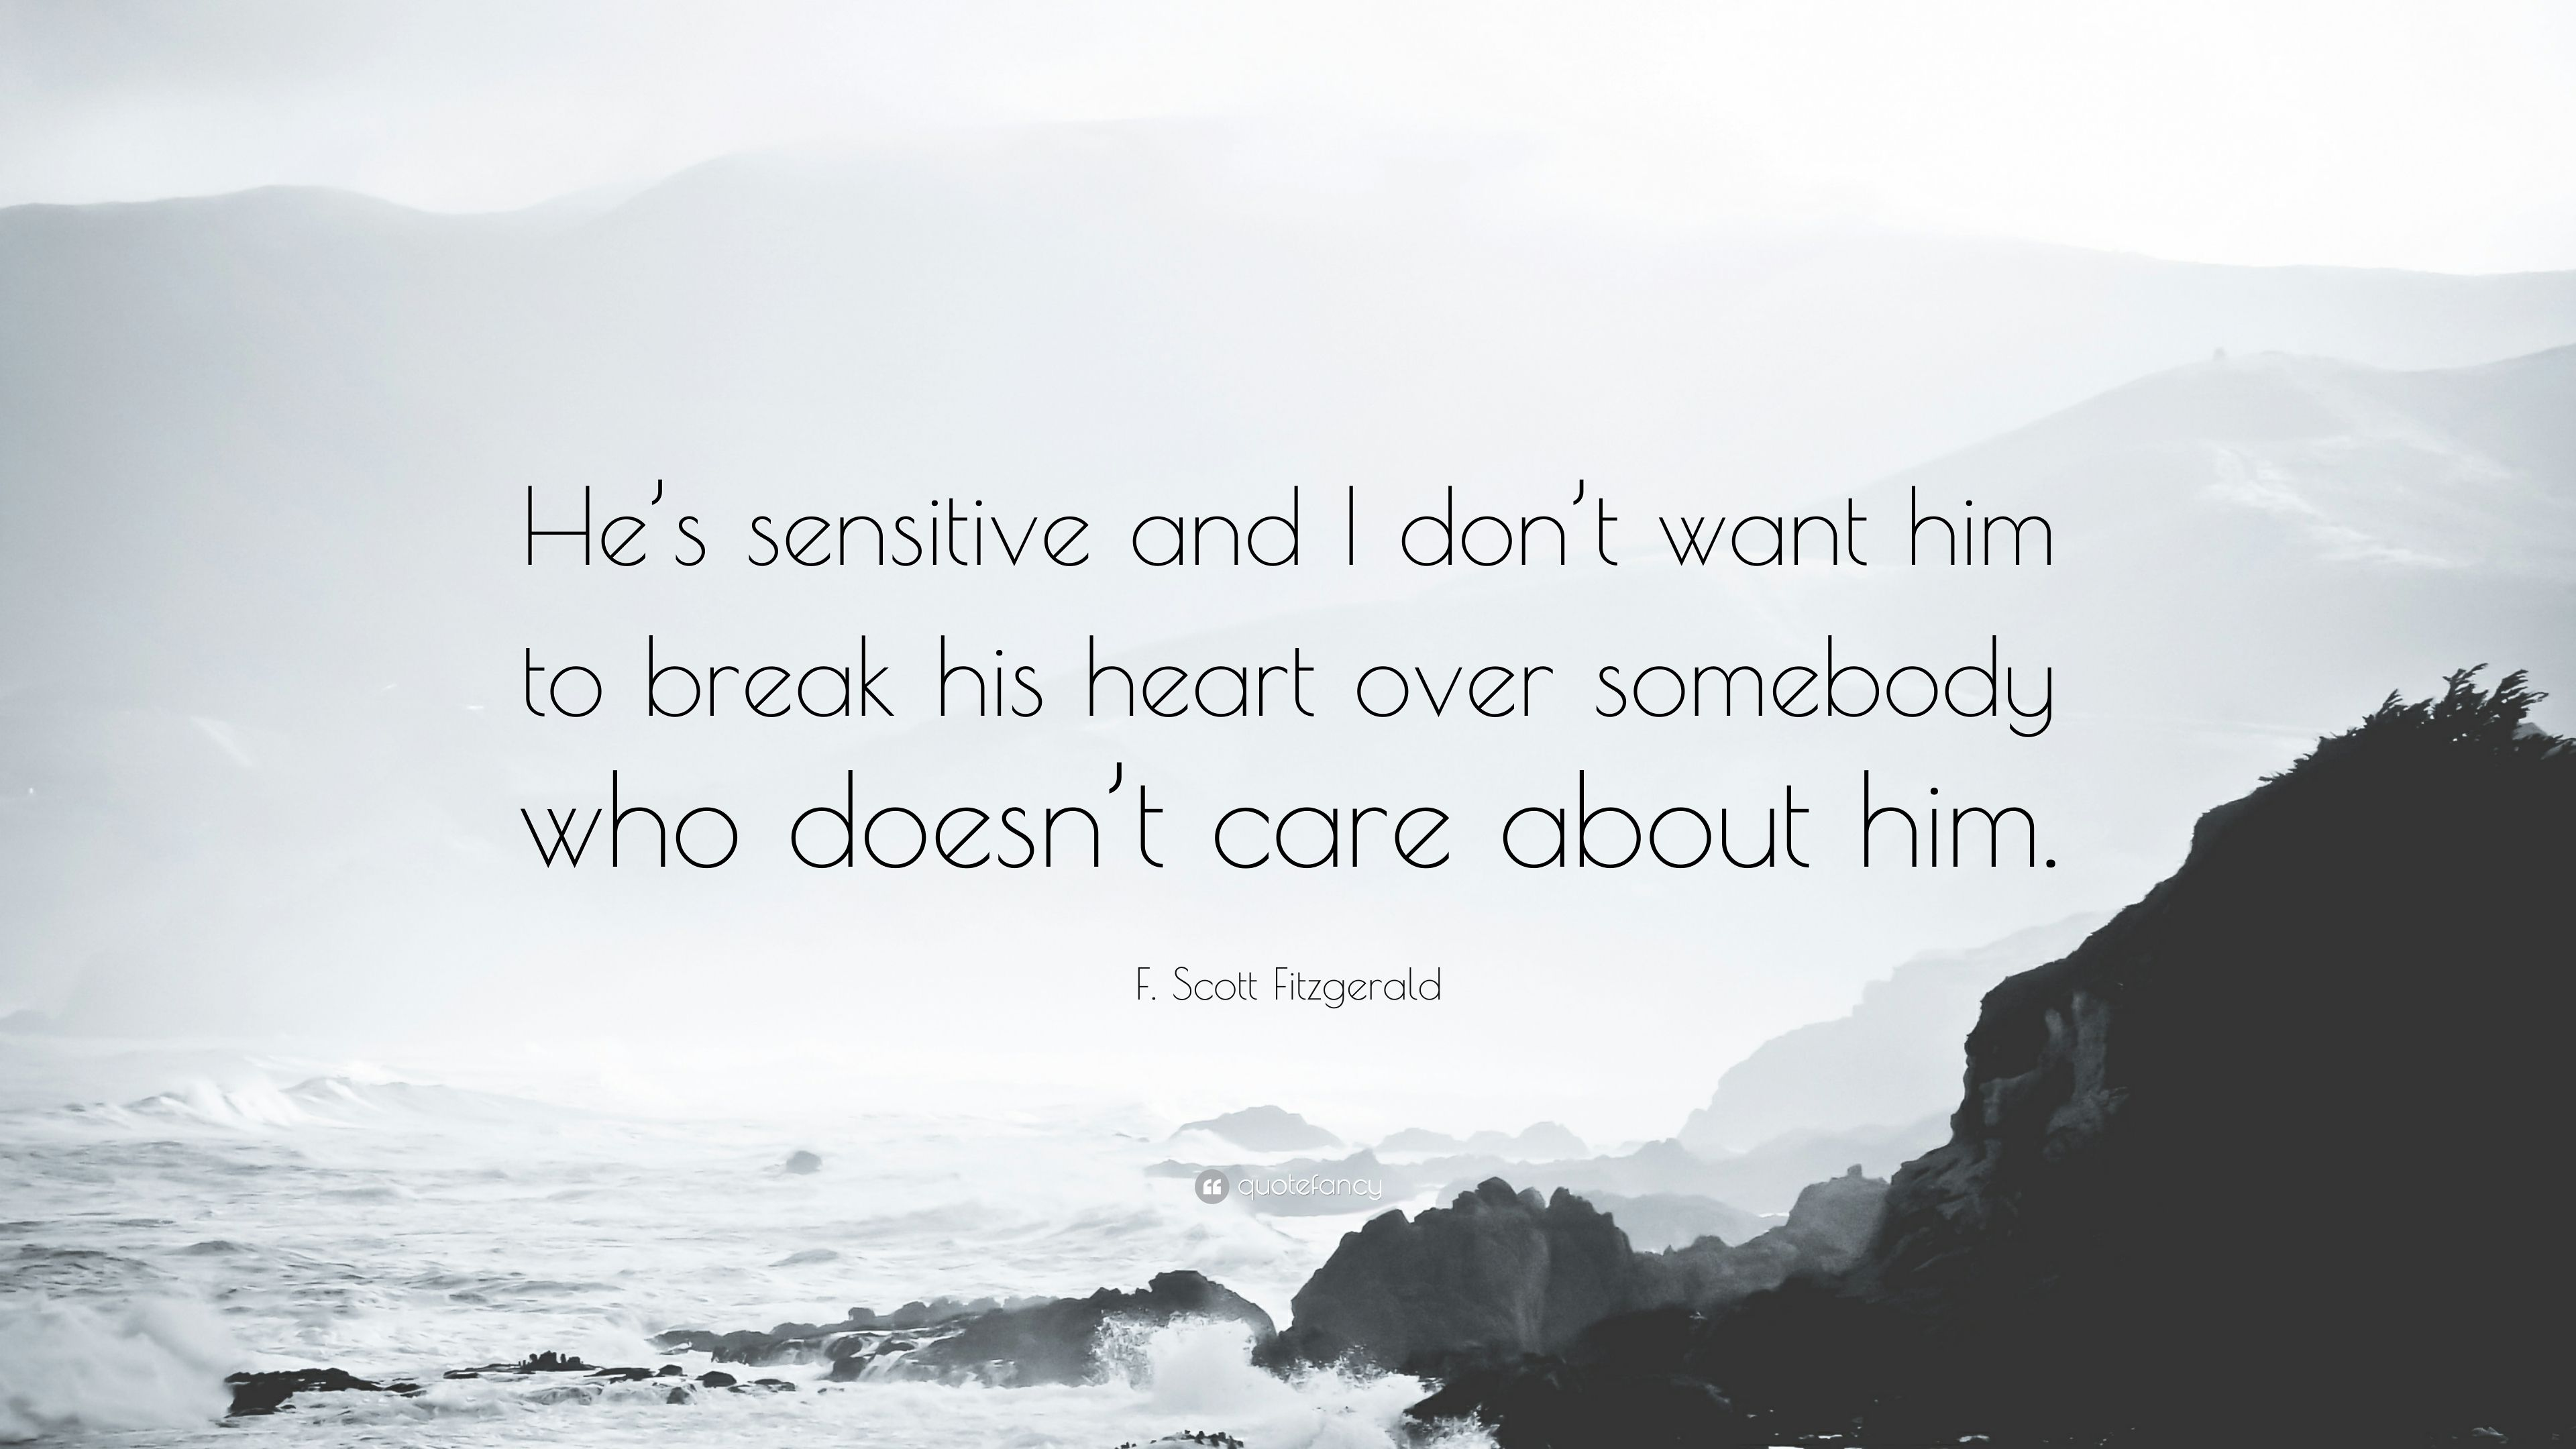 F Scott Fitzgerald Quote Hes Sensitive And I Dont Want Him To